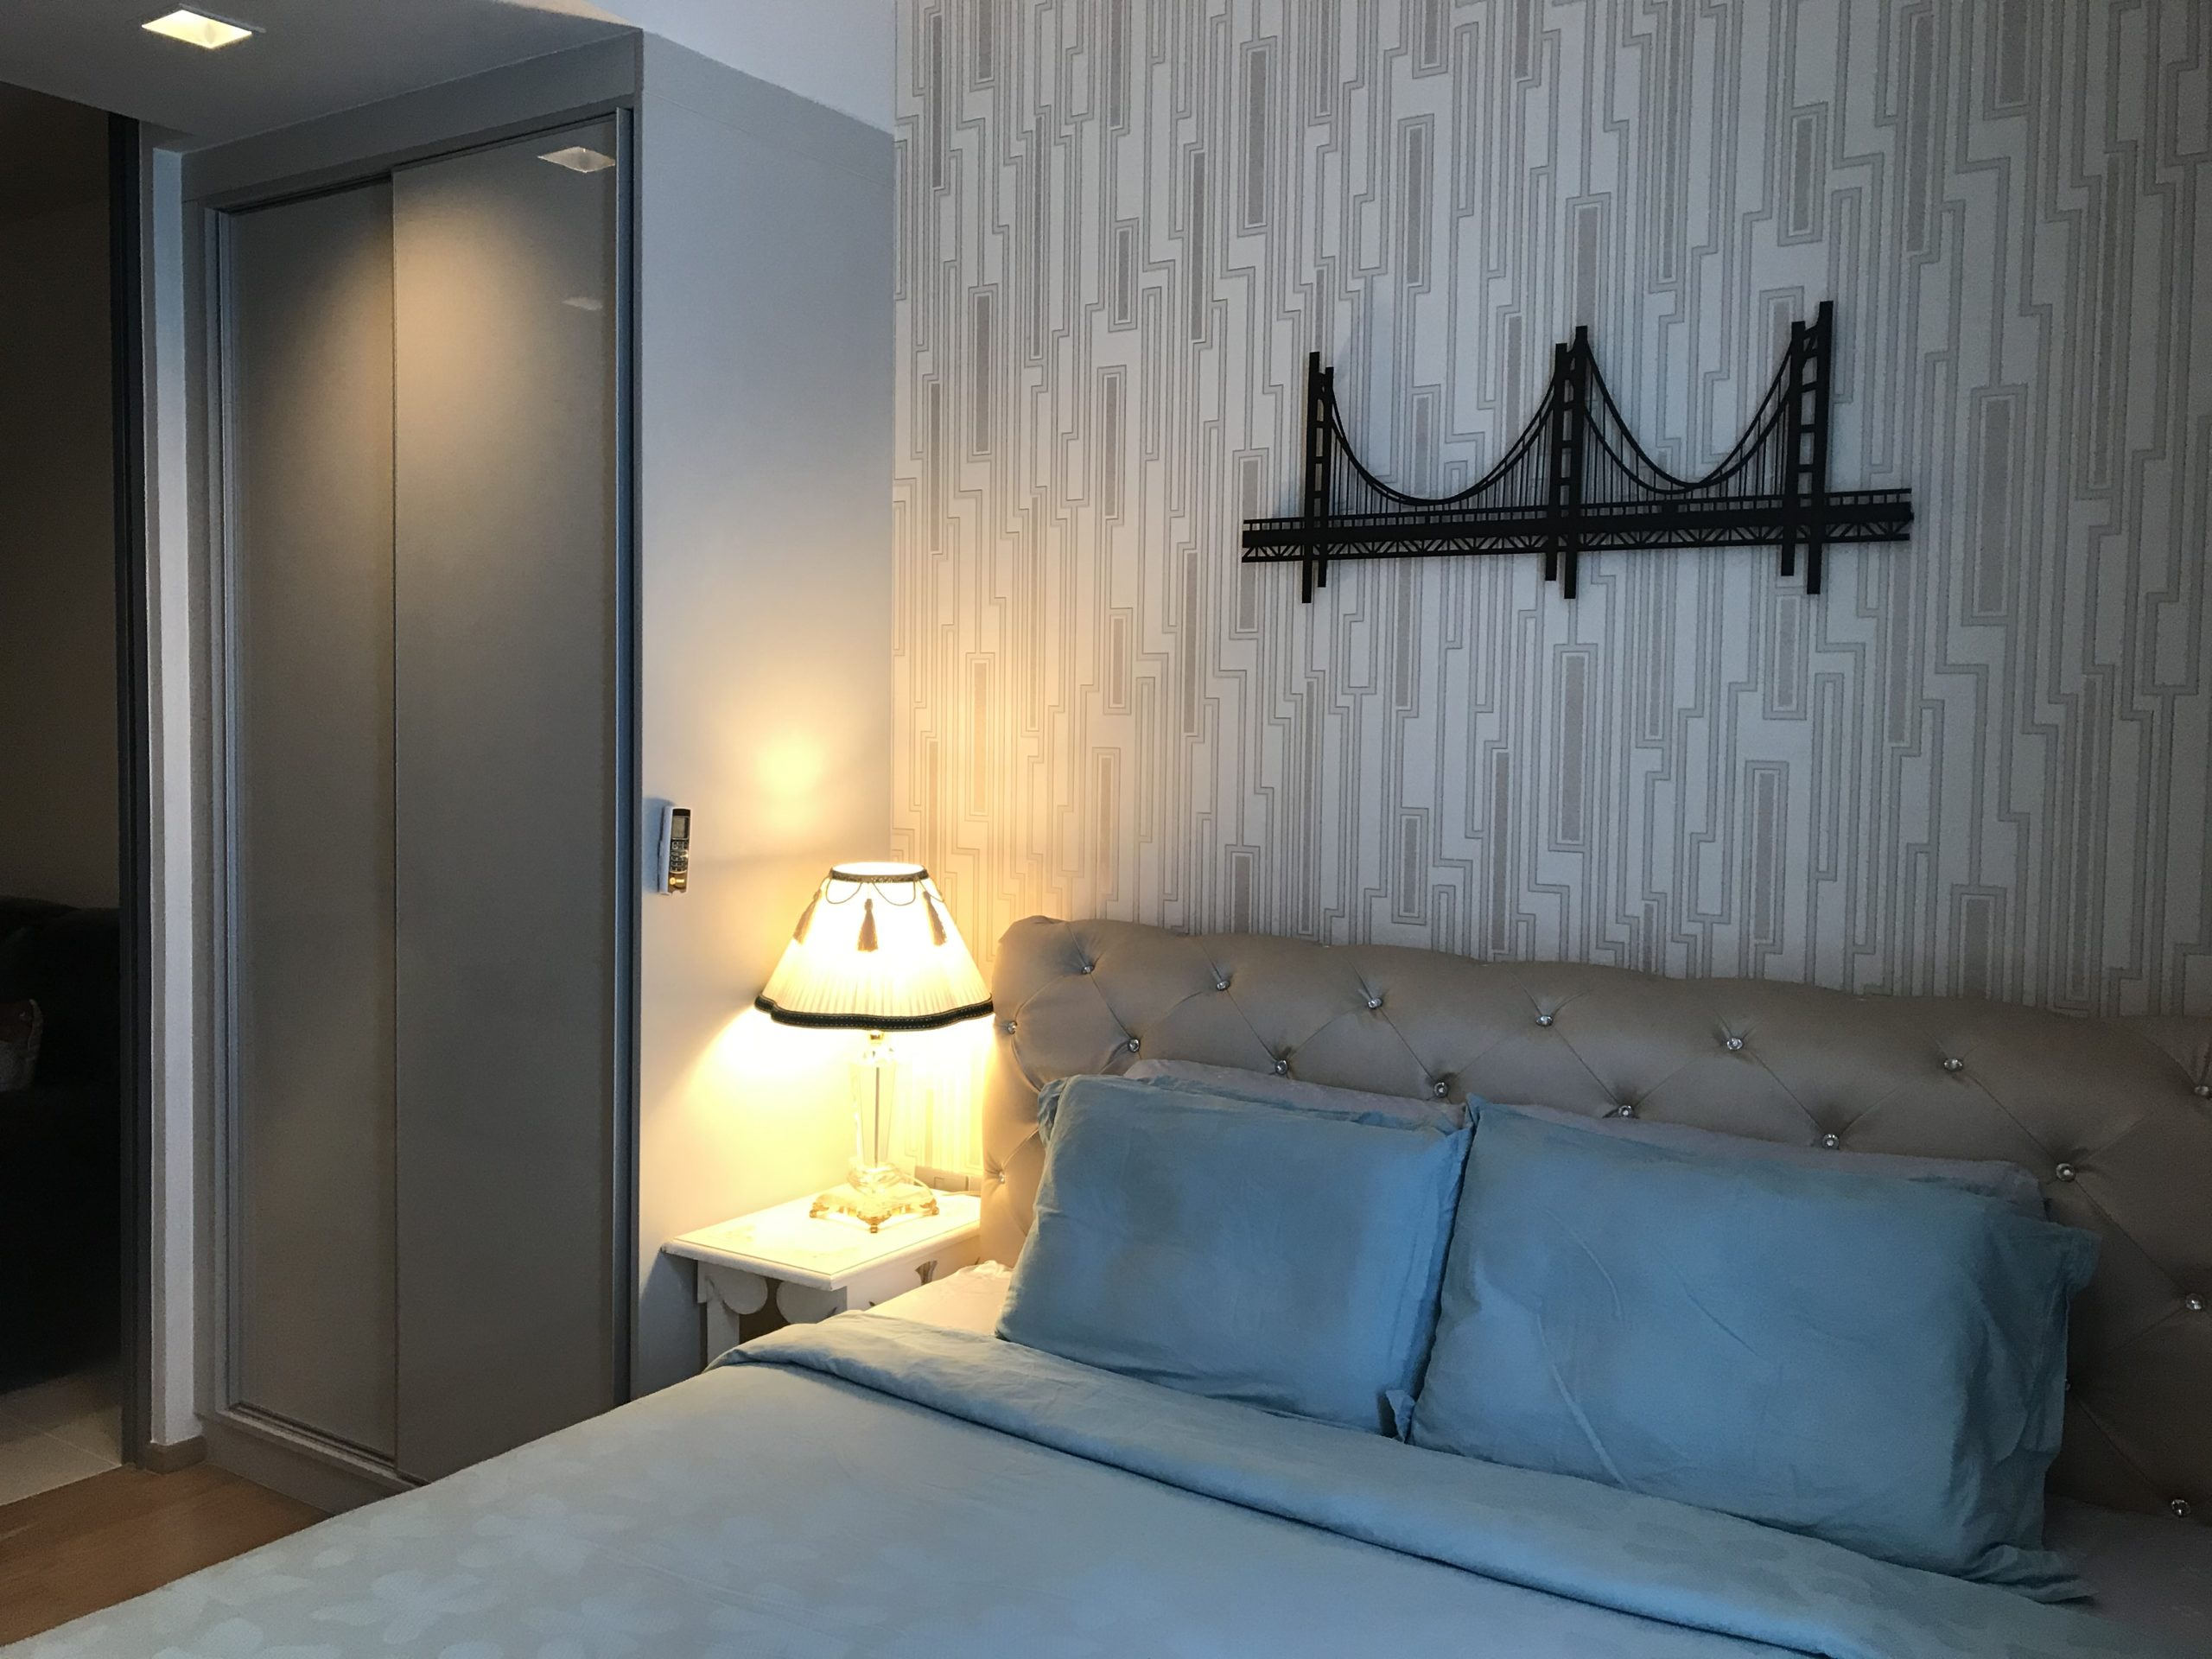 HYDE SUKHUMVIT 13 – BTS Nana 270 meters – Unit 31 Sq.m